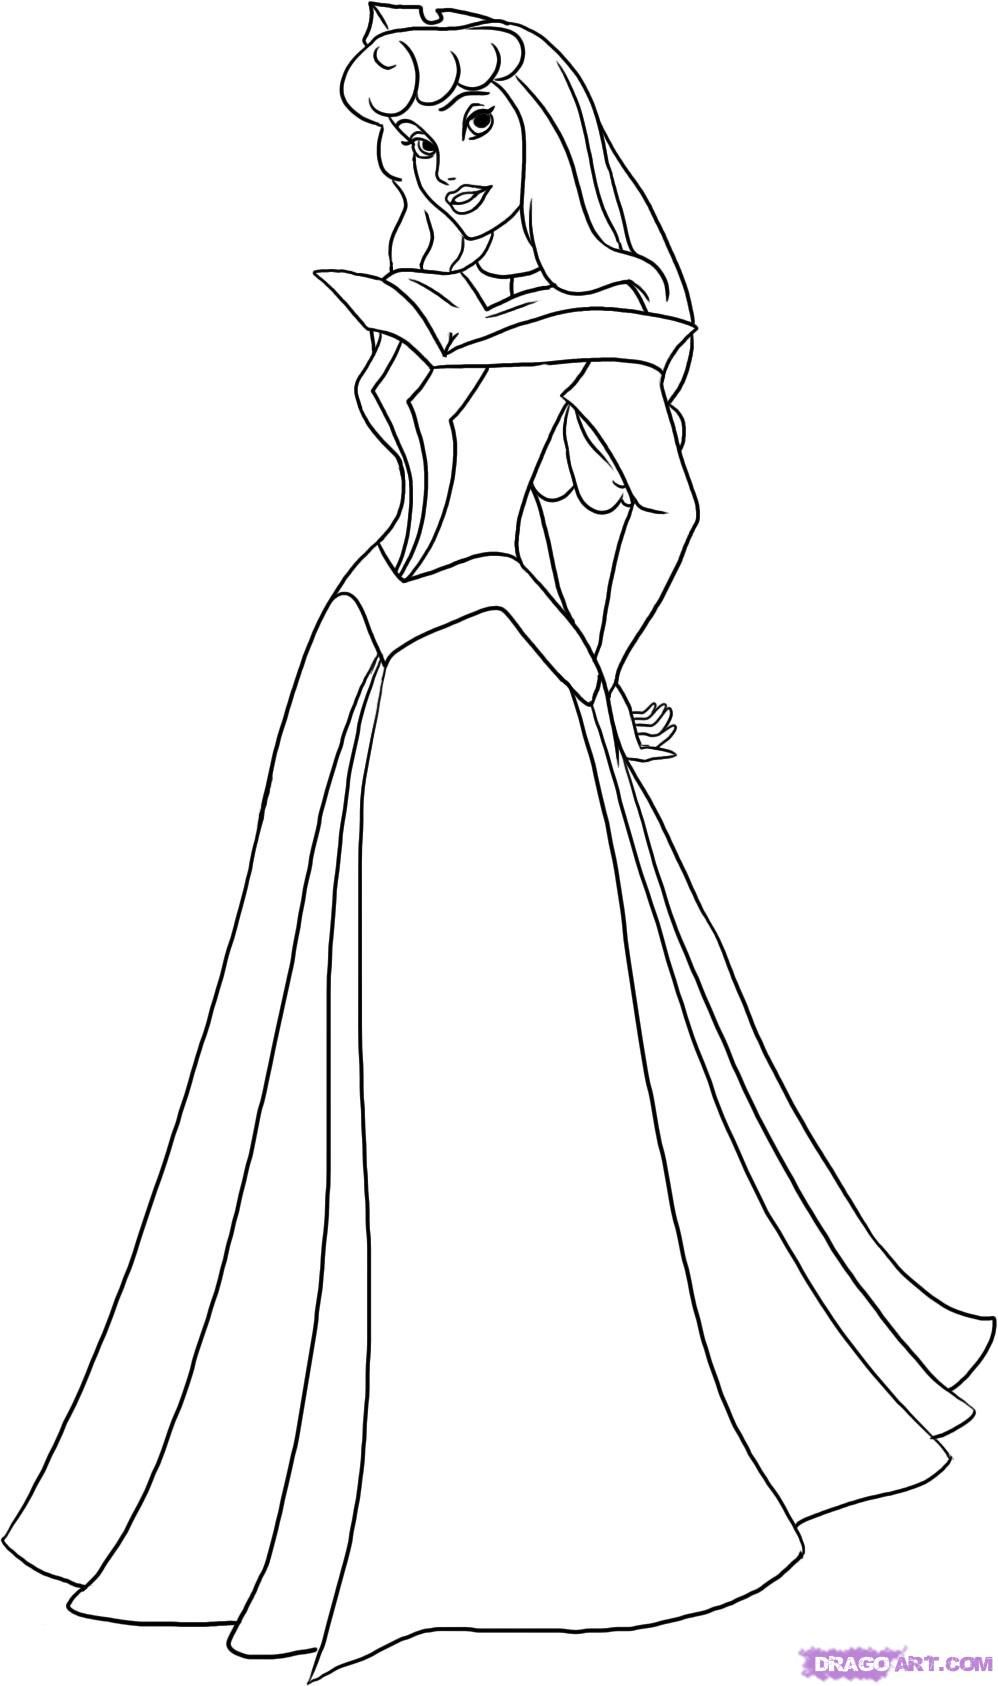 Princess Aurora Coloring Page Disney princess coloring pages